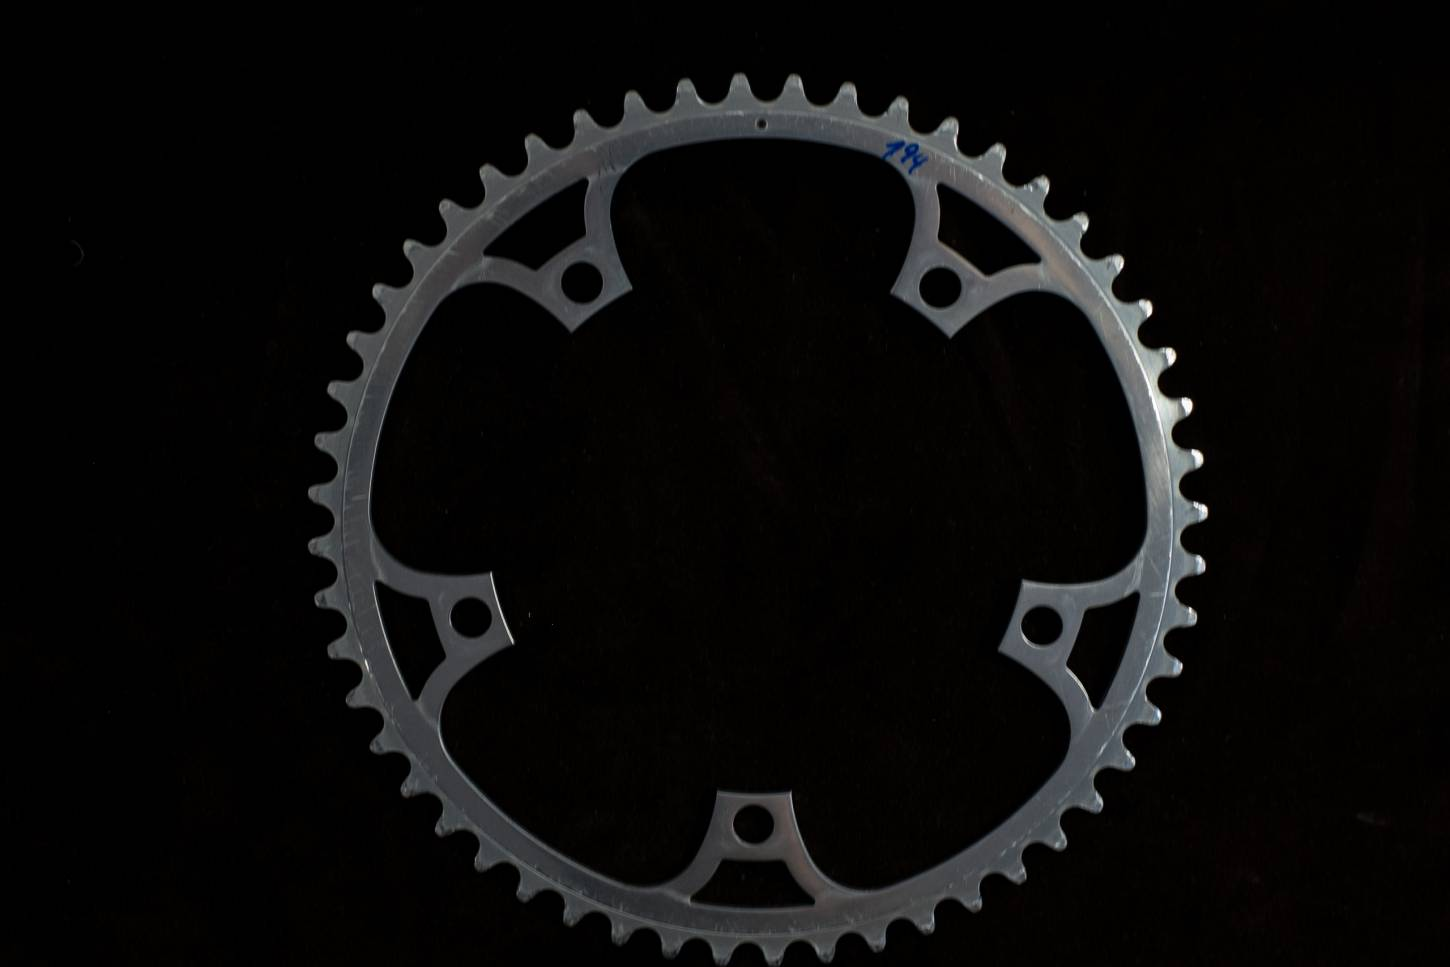 Campagnolo chainring / chainring 144 LK 52 teeth